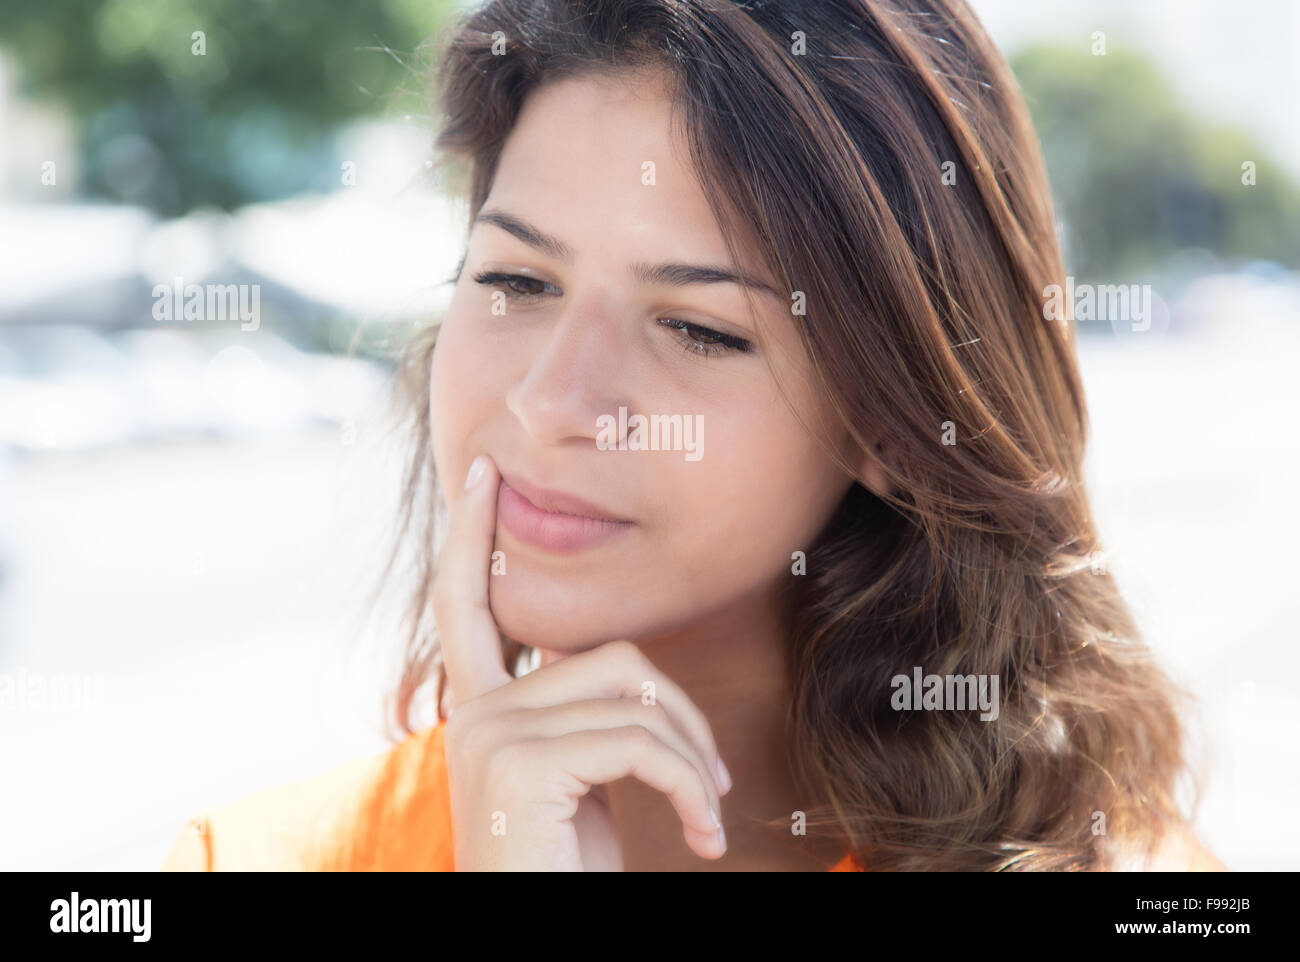 Thinking caucasian woman in a orange shirt with buildings and street in the background Stock Photo